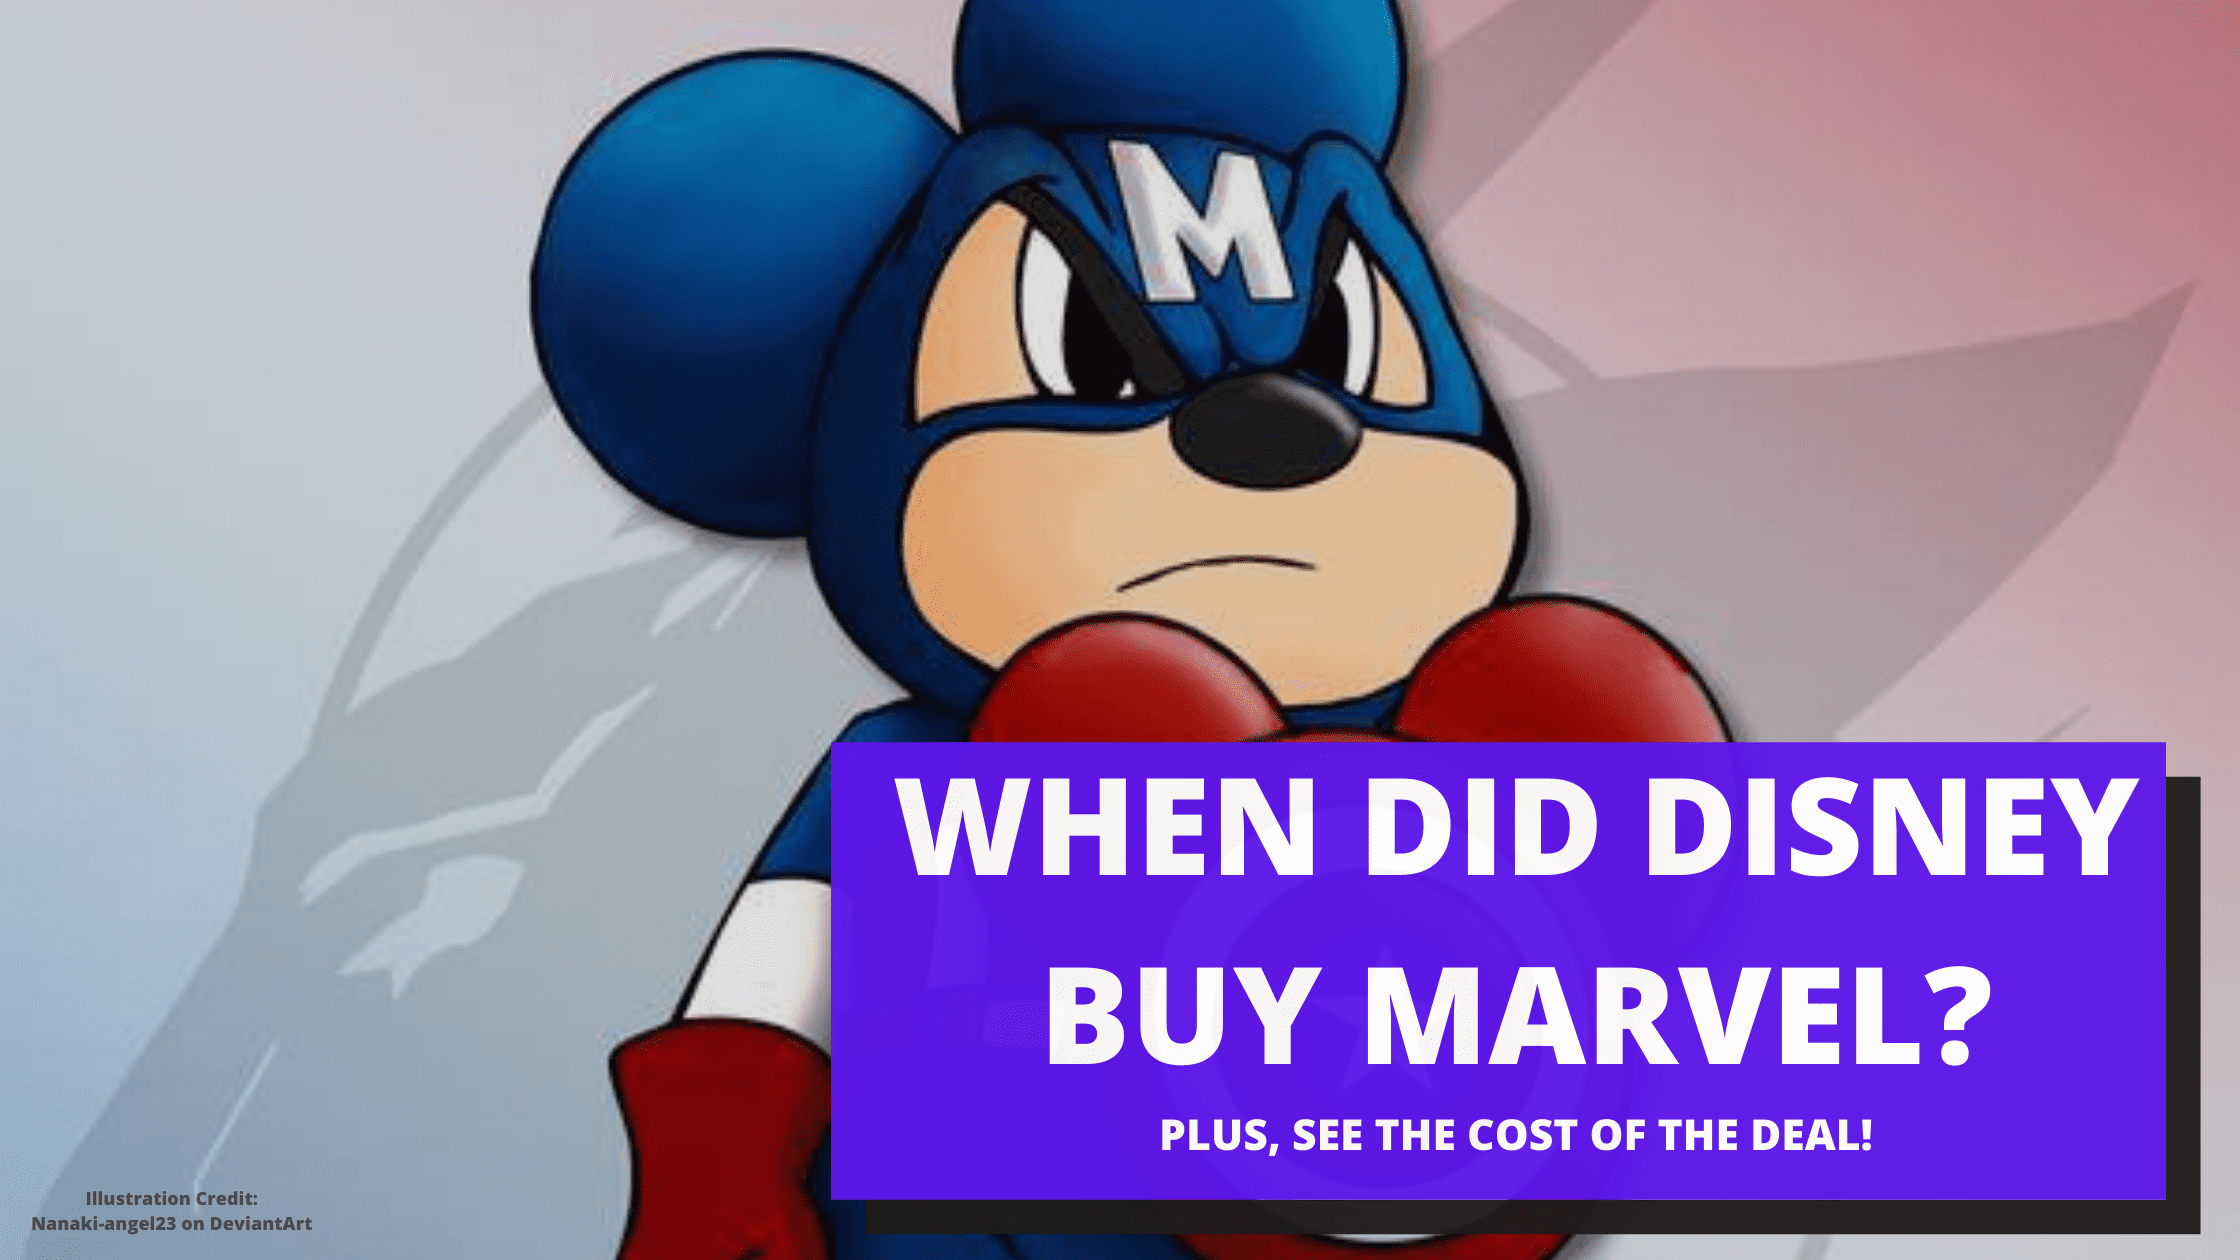 WHEN DID DISNEY BUY MARVEL?